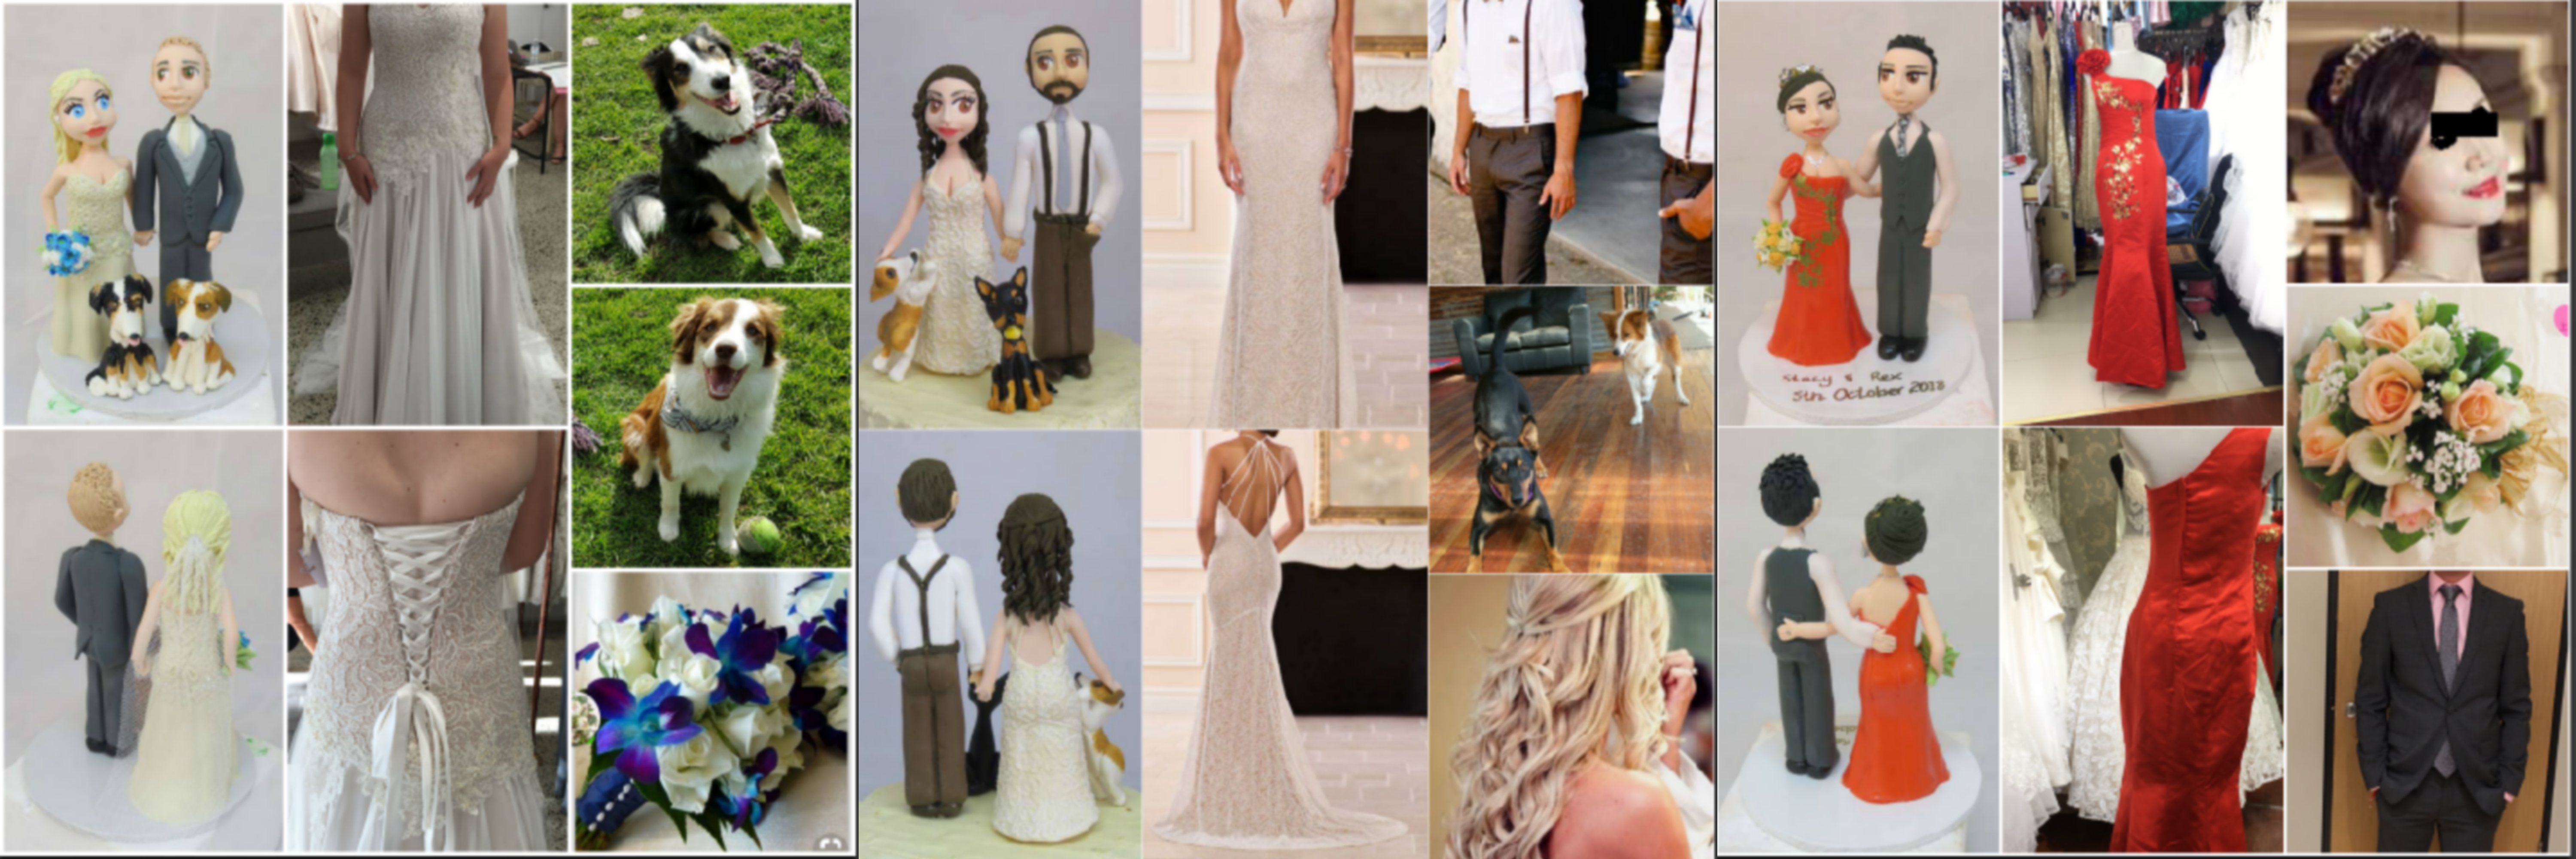 Personalised Bride and Groom figurines Cake Toppers image 6